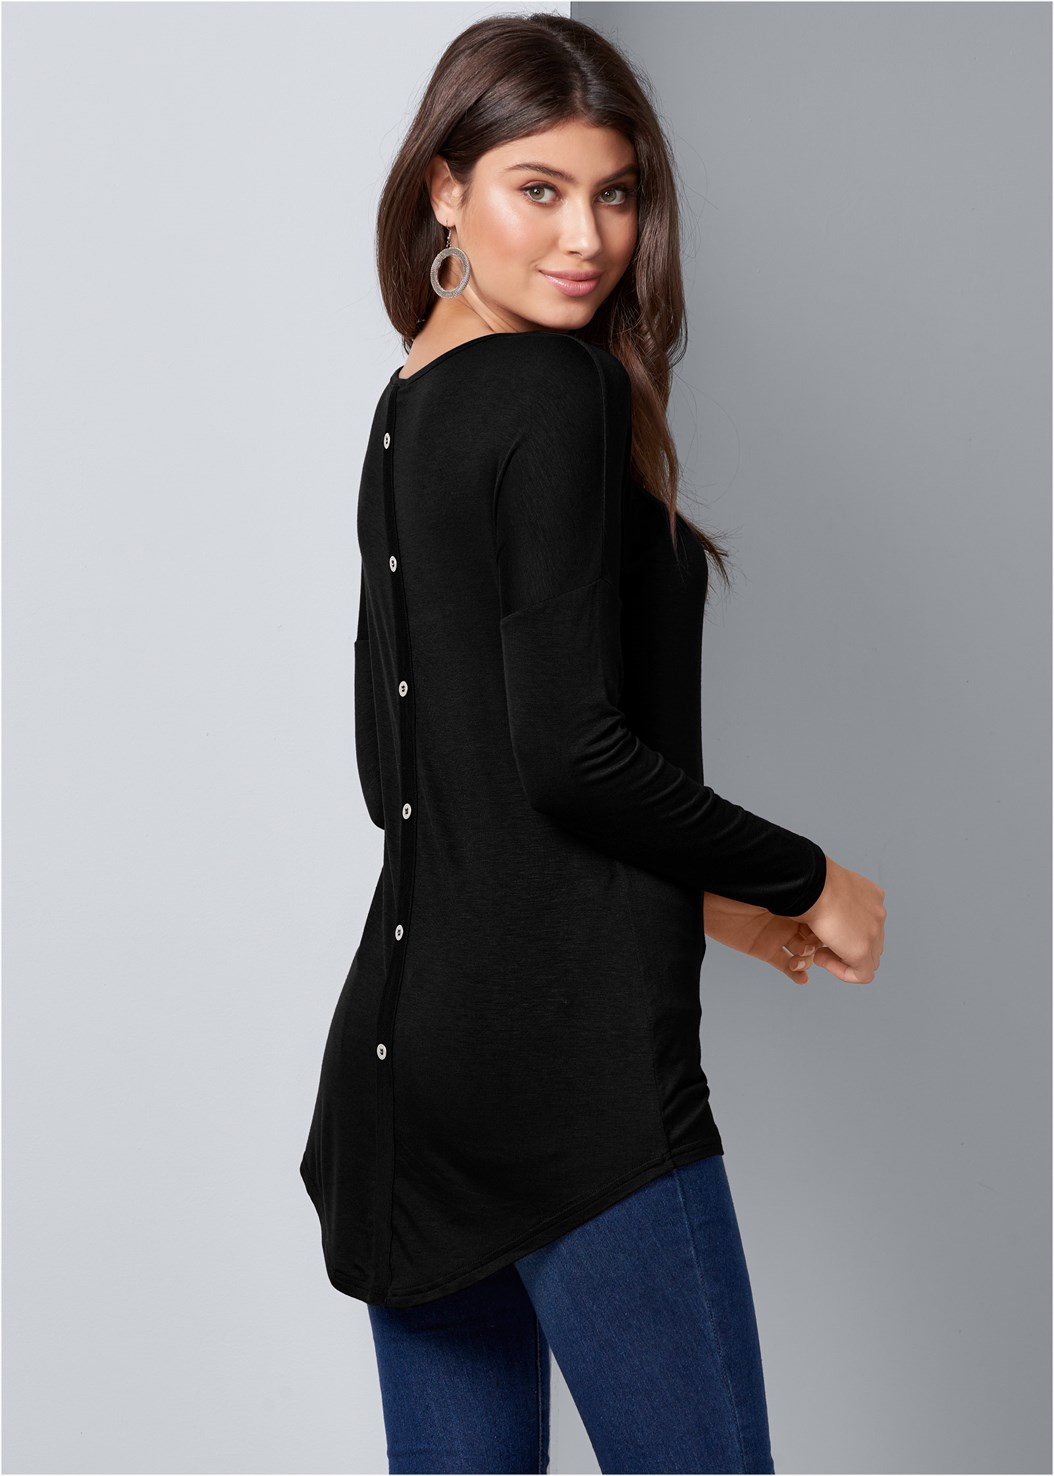 Button Back Scoop Neck Top,Mid Rise Color Skinny Jeans,Wrap Stitch Detail Booties,Over The Knee Mini Tie Boot